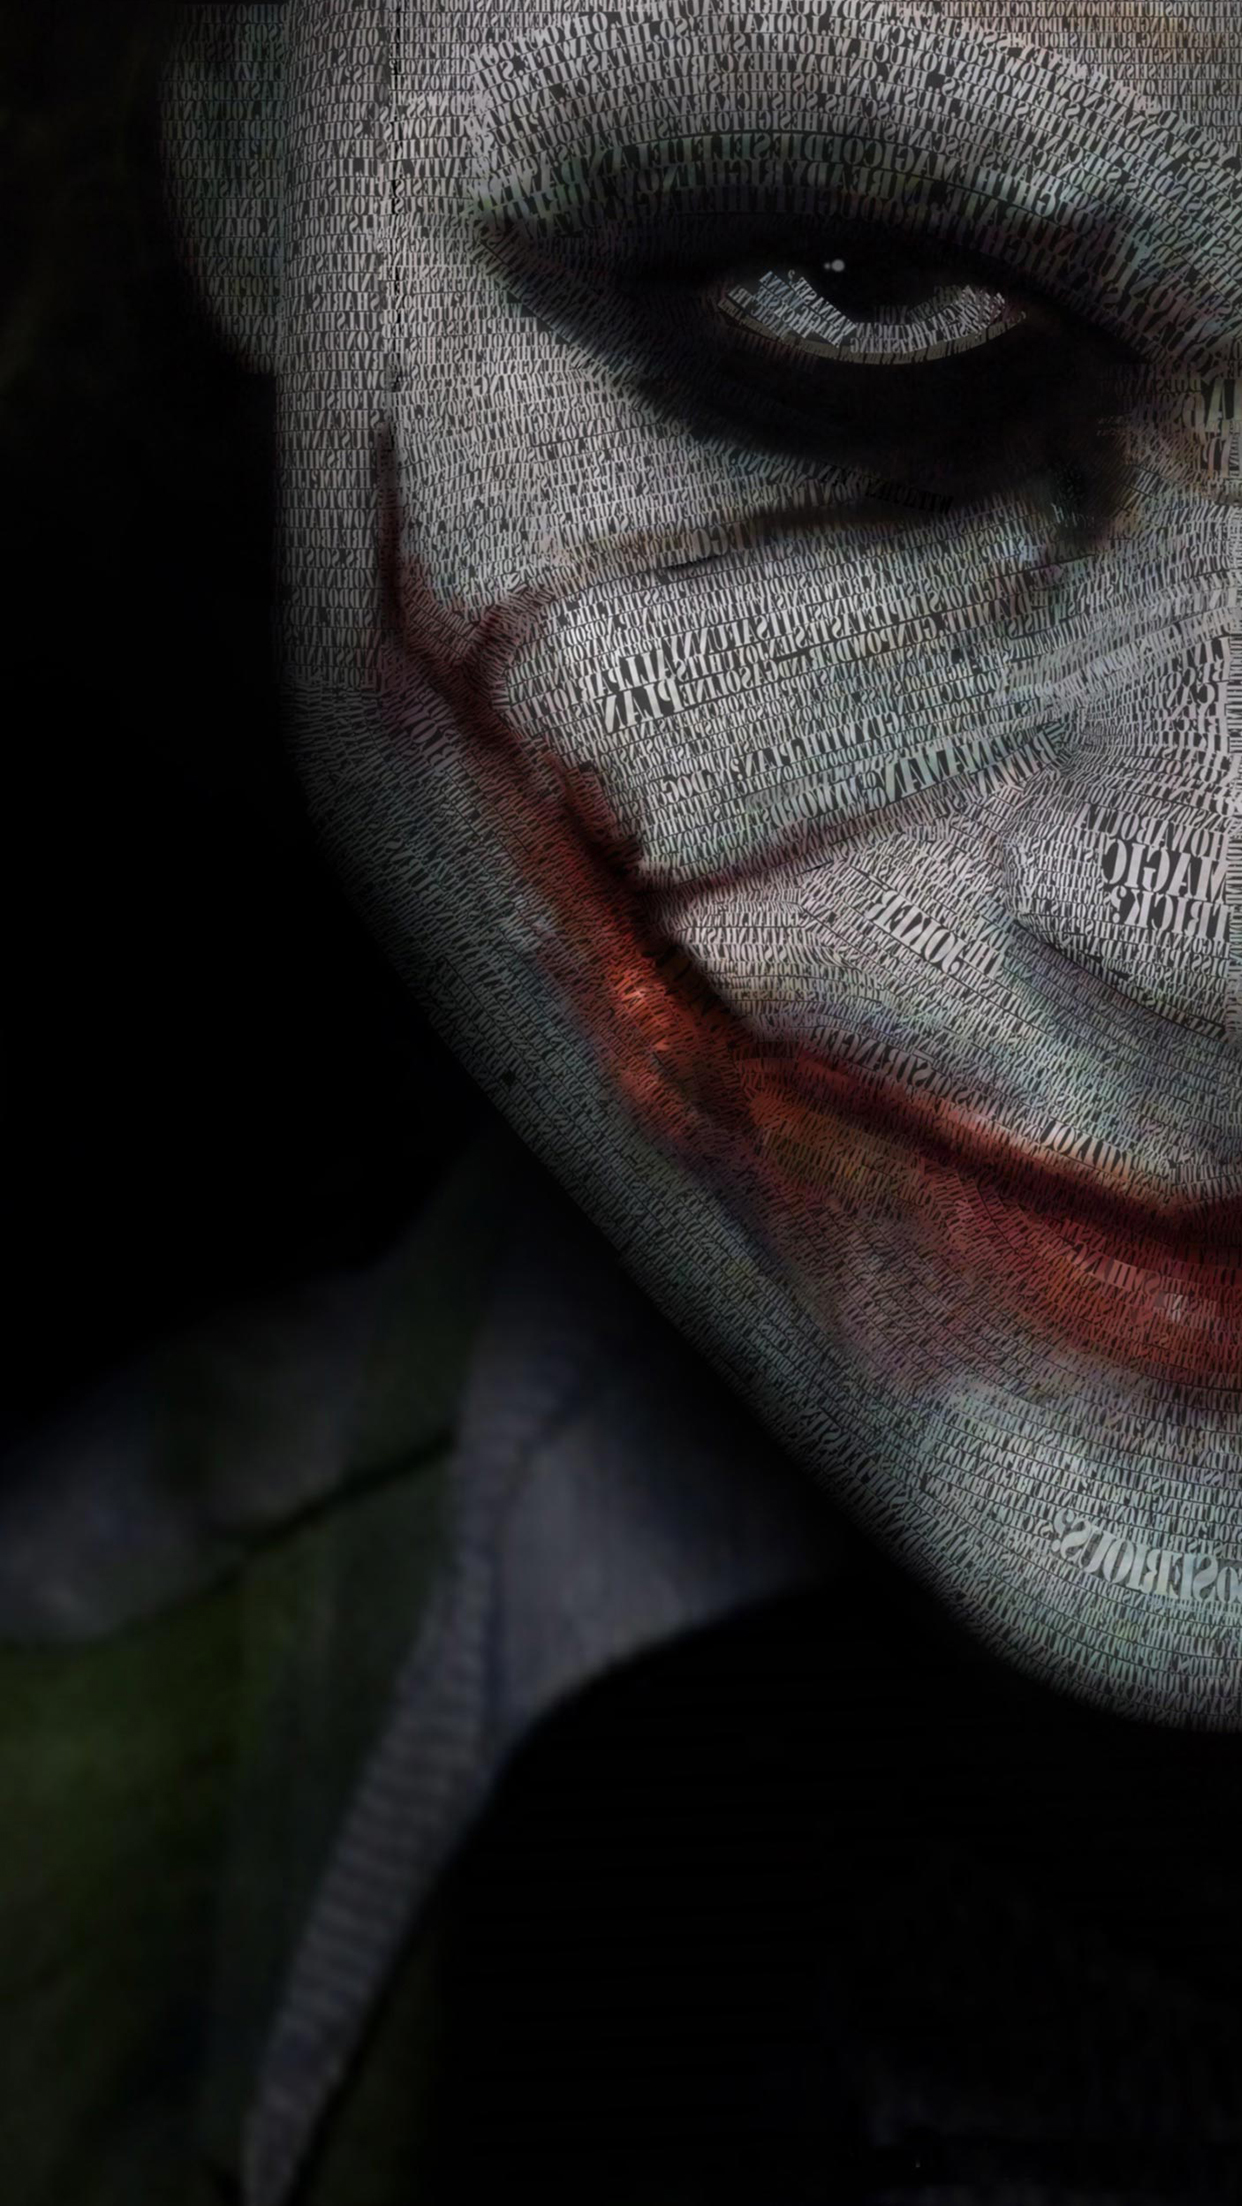 Joker Art Wallpaper For Iphone 11 Pro Max X 8 7 6 Free Download On 3wallpapers